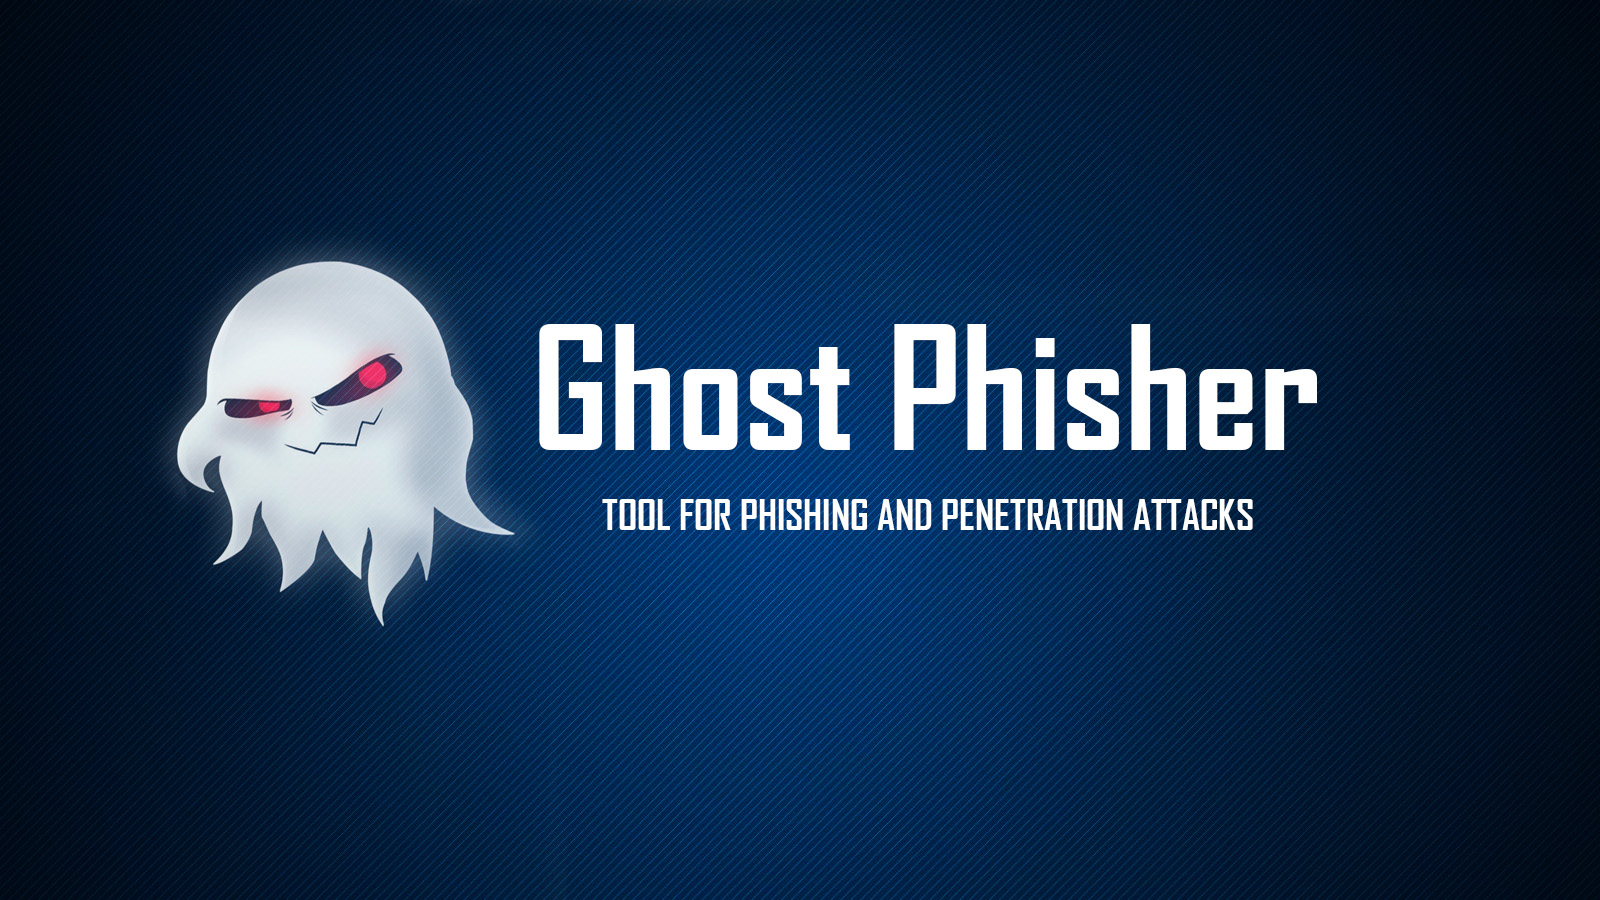 Ghost Phisher - Tool For Phishing and Penetration Attacks